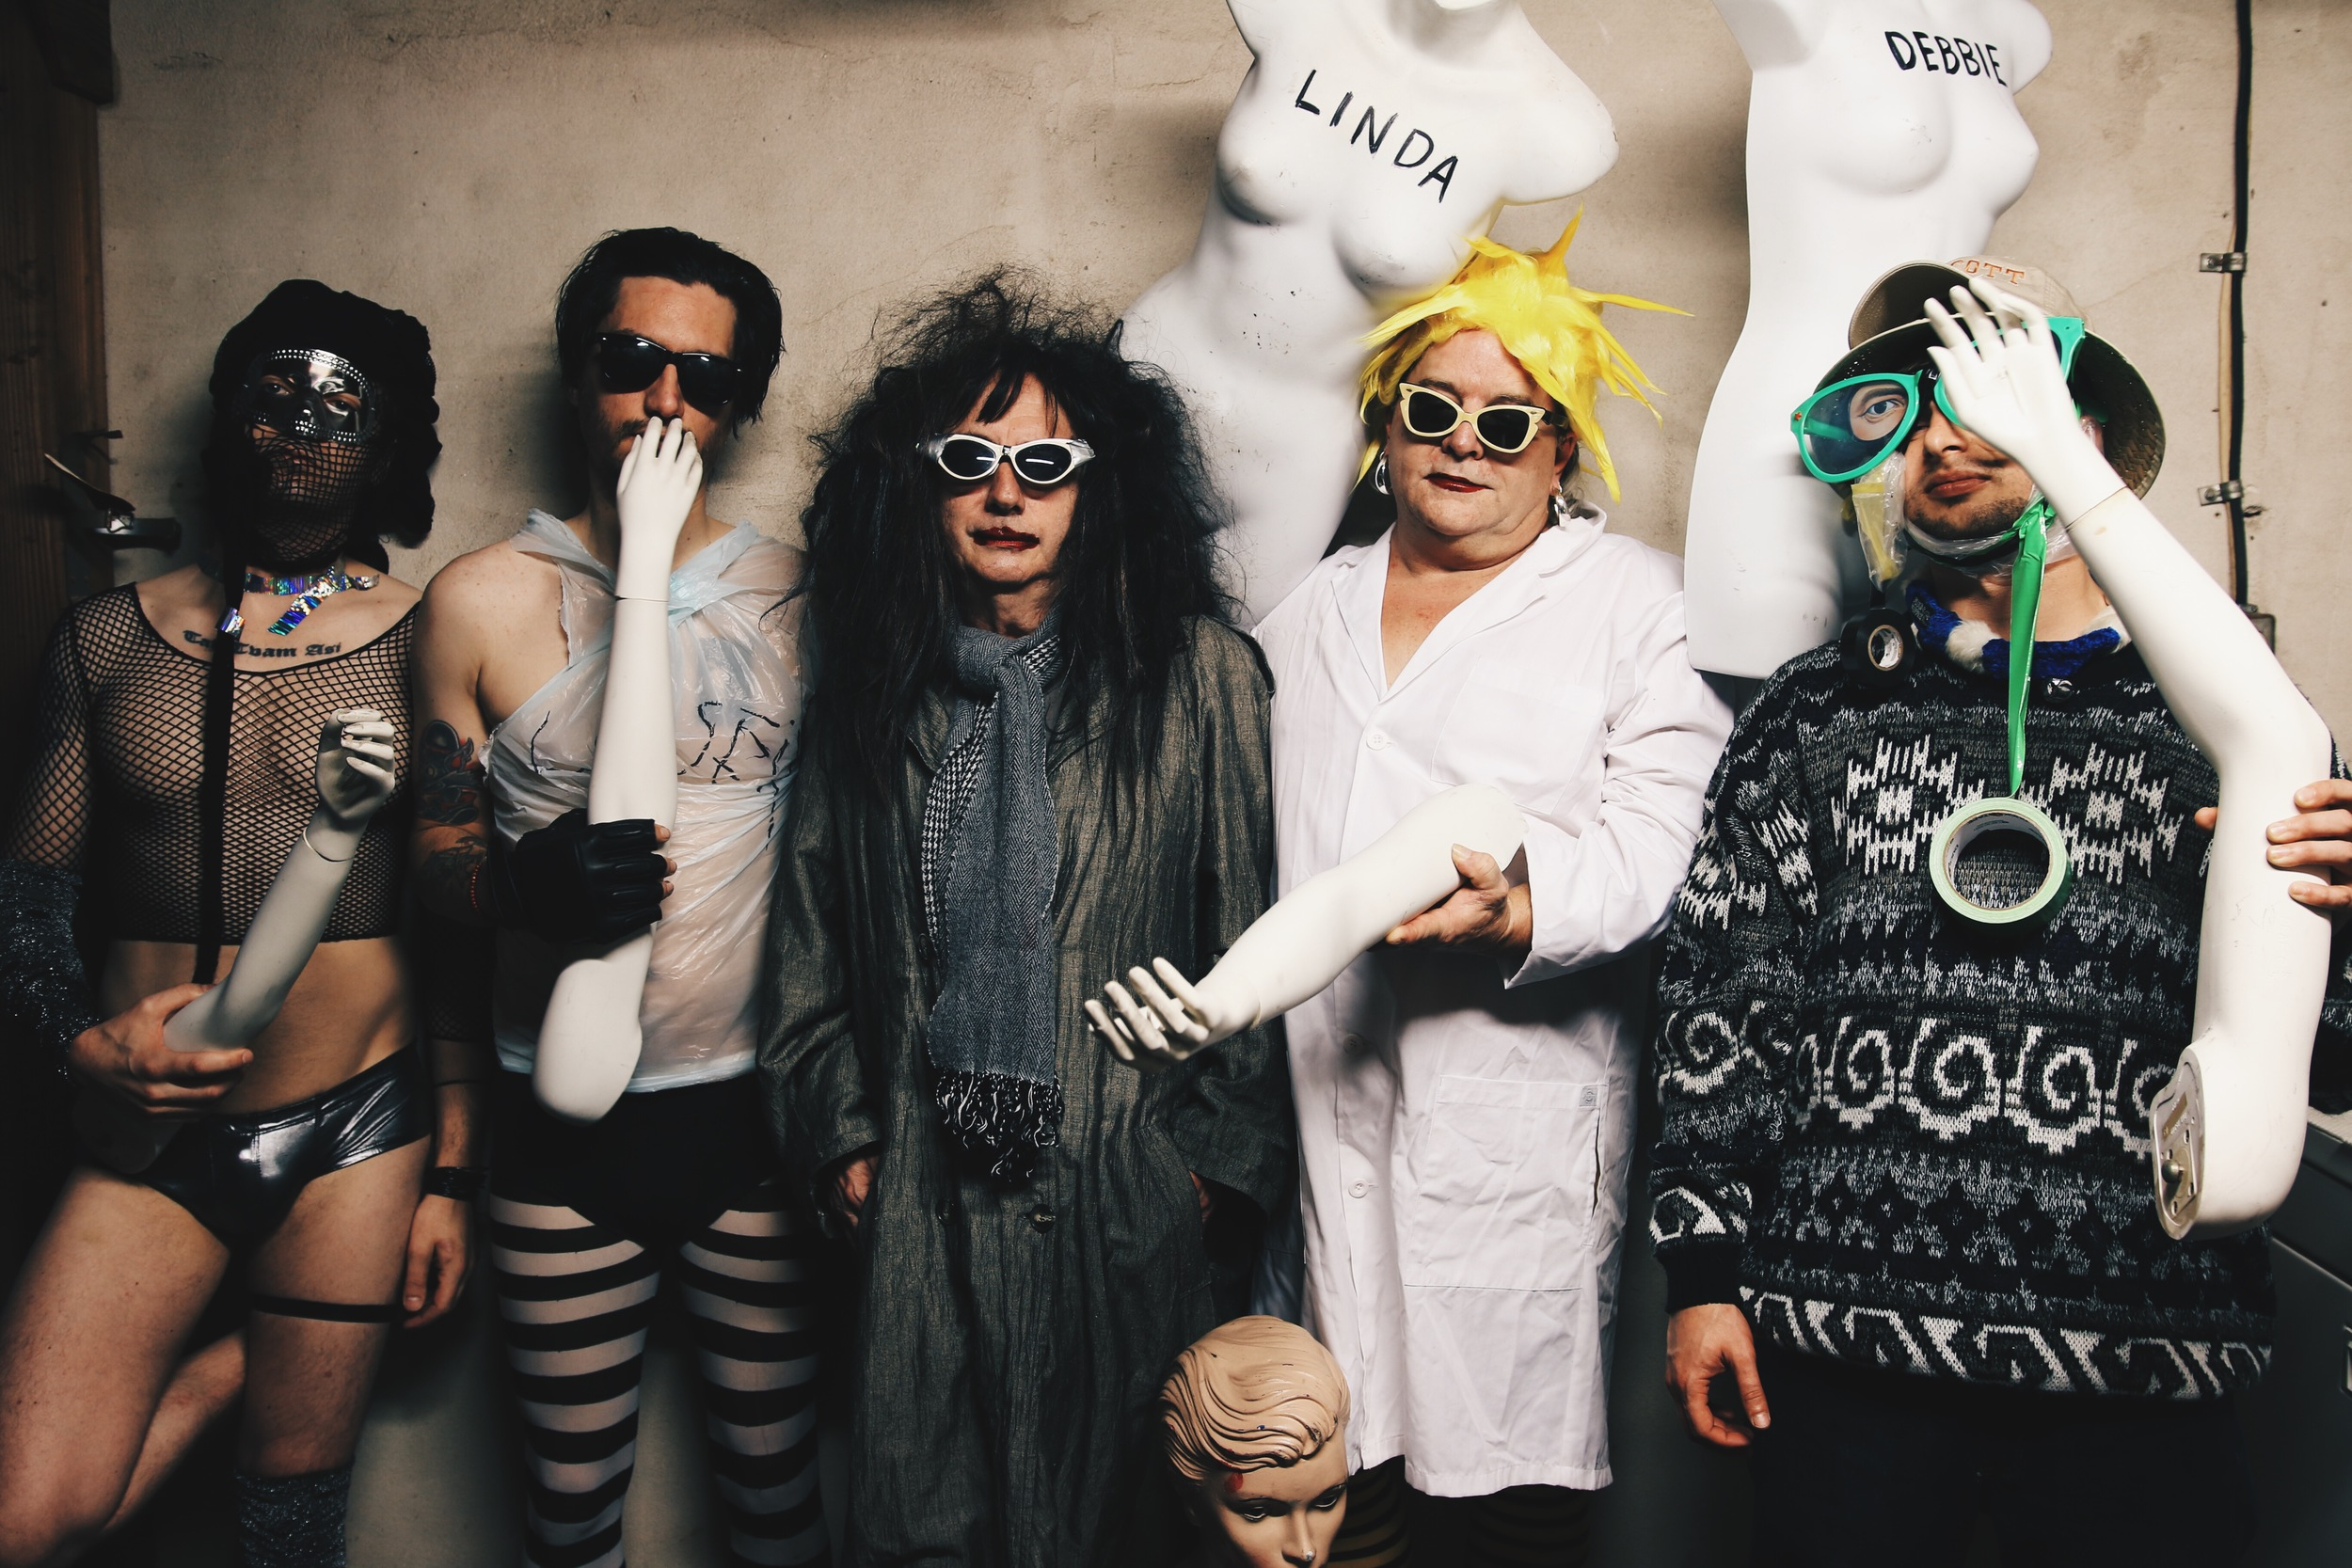 Gary Wilson and the Blind Dates, L-R: Anders Larsson, Joe Guevara, Gary Wilson, Ian McGehee, Charlie Bottino. Photo: Nick Lane